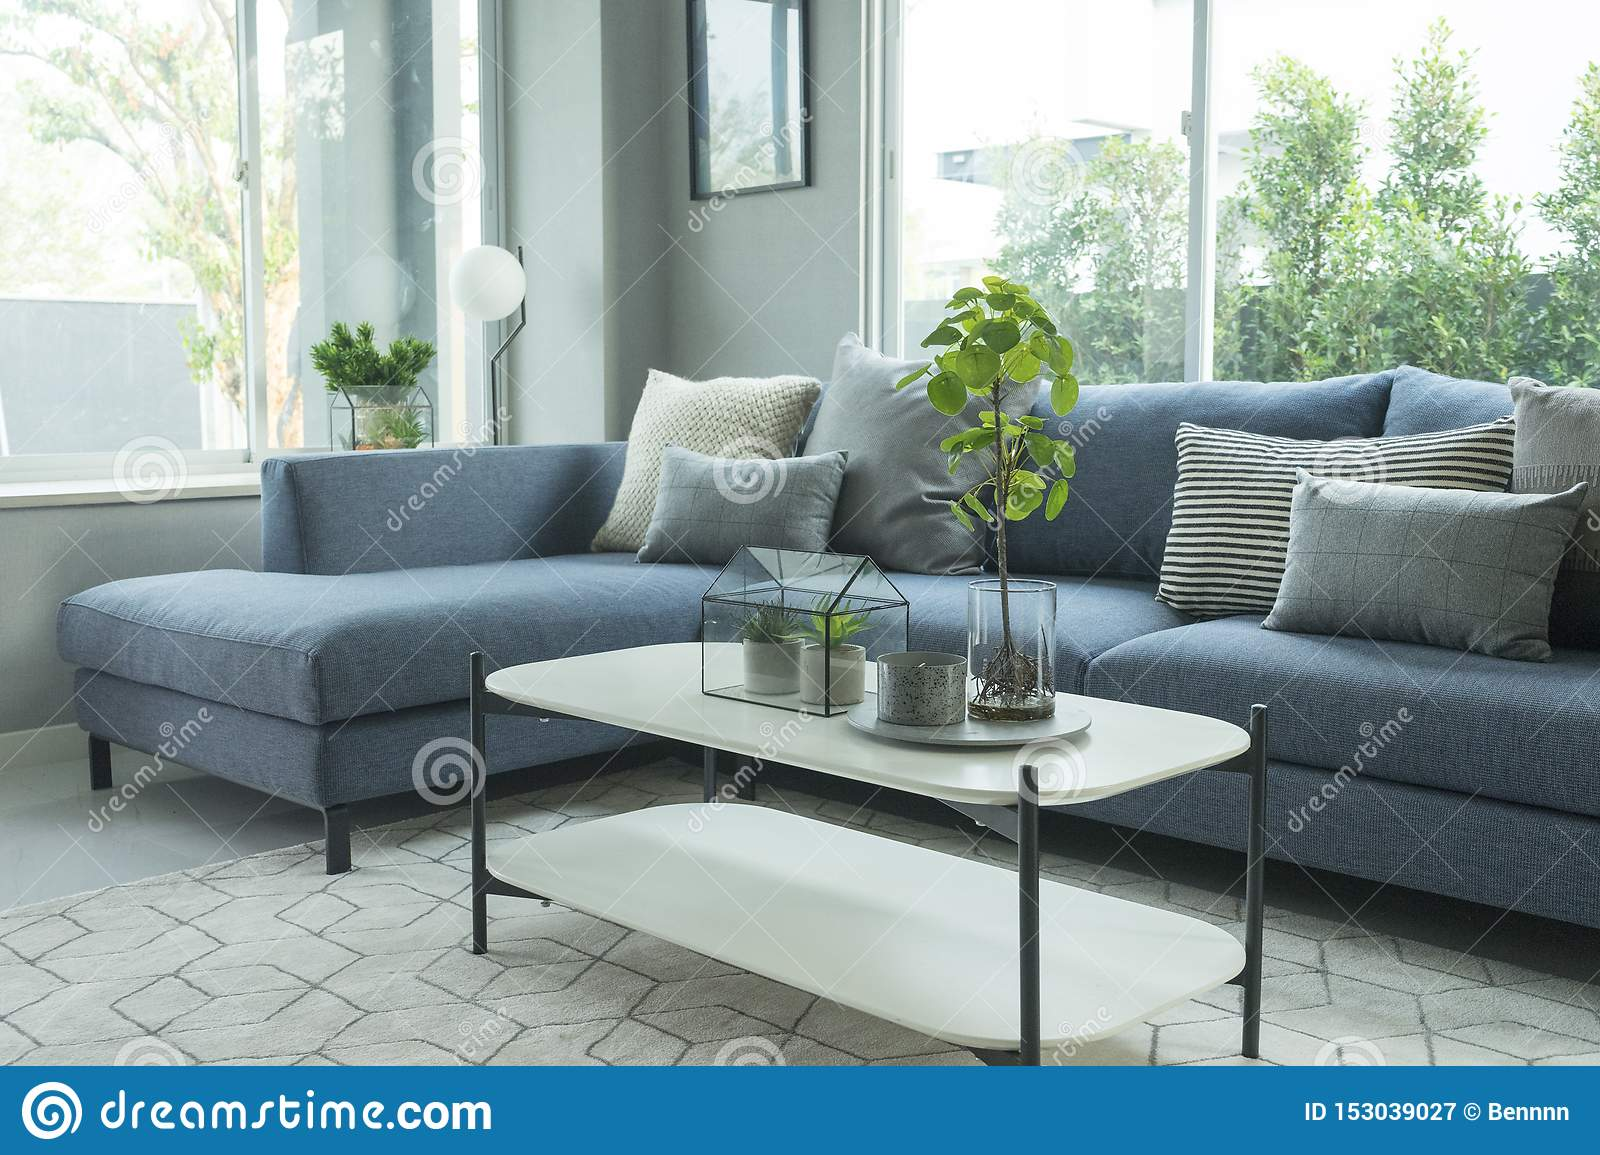 Modern And Stylish Living Room Blue Sofa And Grey Pillow With Coffee Table Stock Image Image Of Home Design 153039027